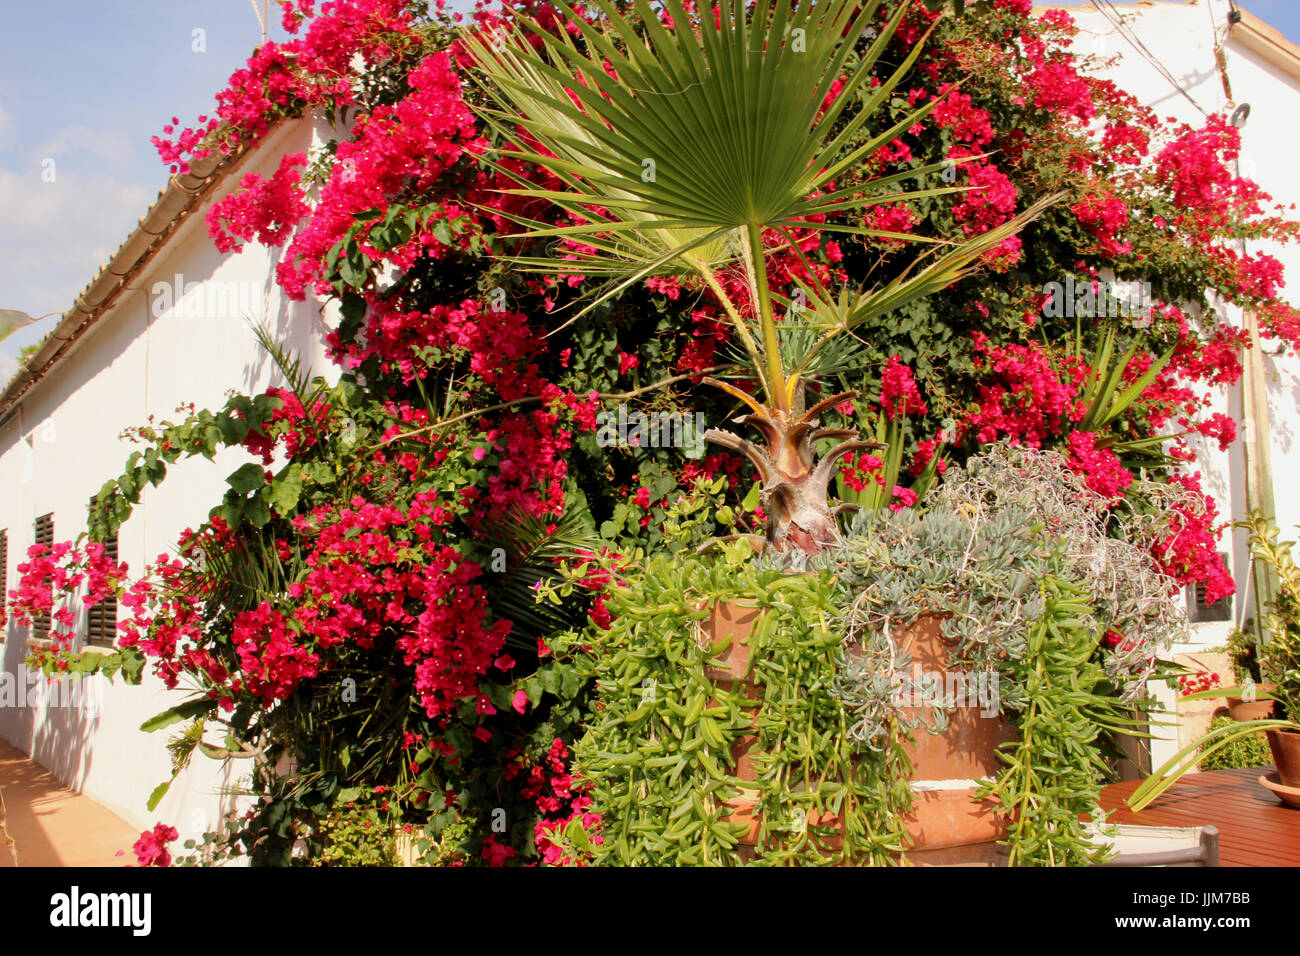 flowering bougainvillea and mediterranian plants at a house - Stock Image